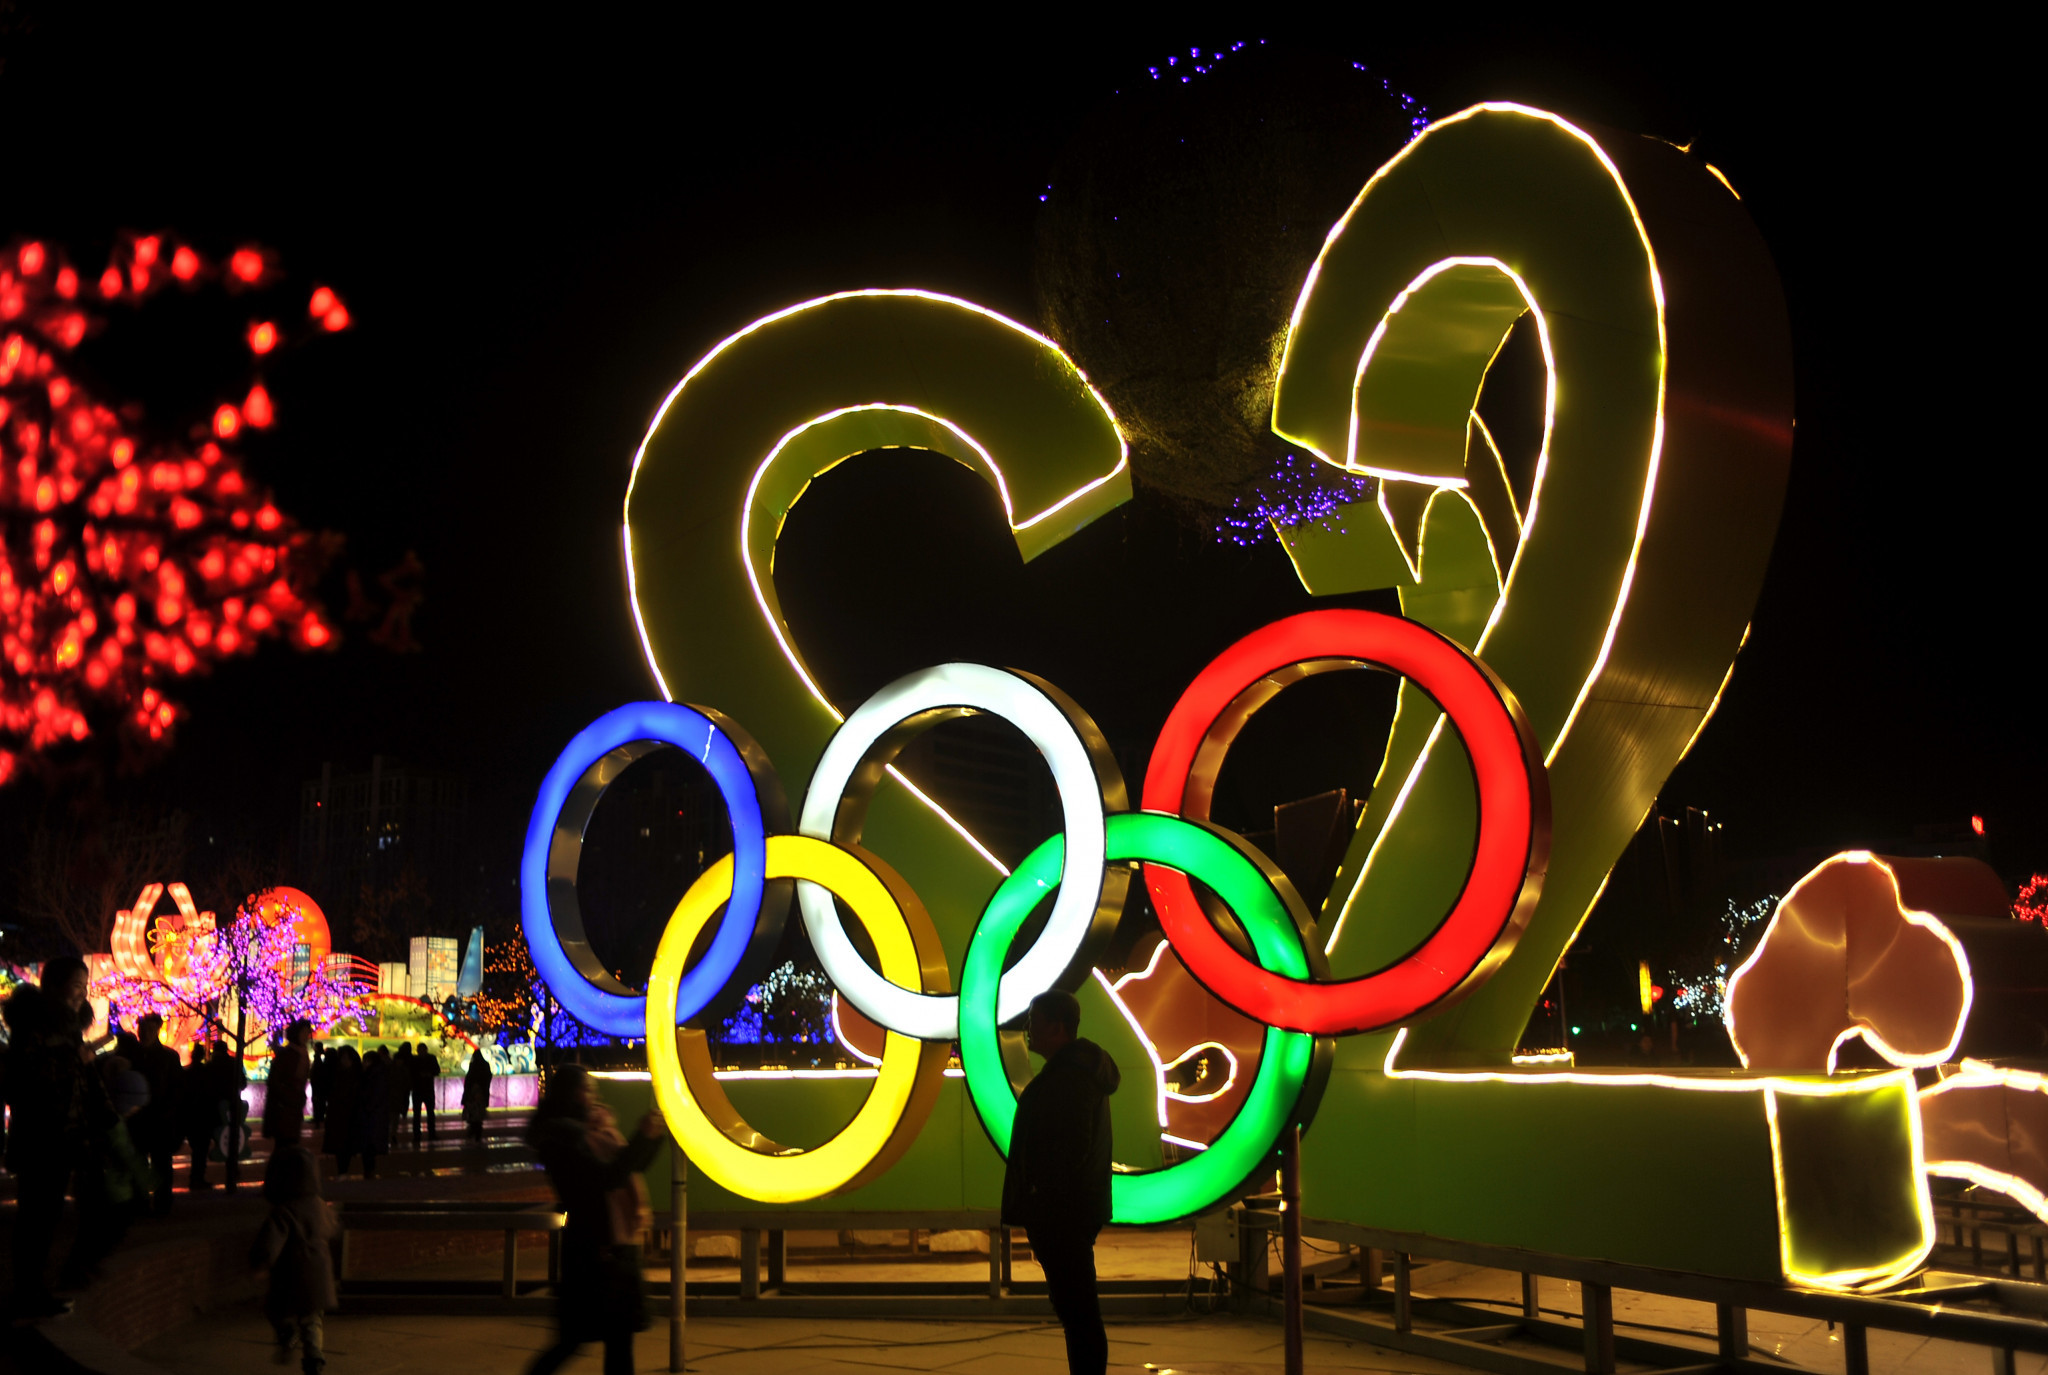 Diplomatic tensions concerns over human rights are threatening to overshadow the lead-up to Beijing 2022 ©Getty Images